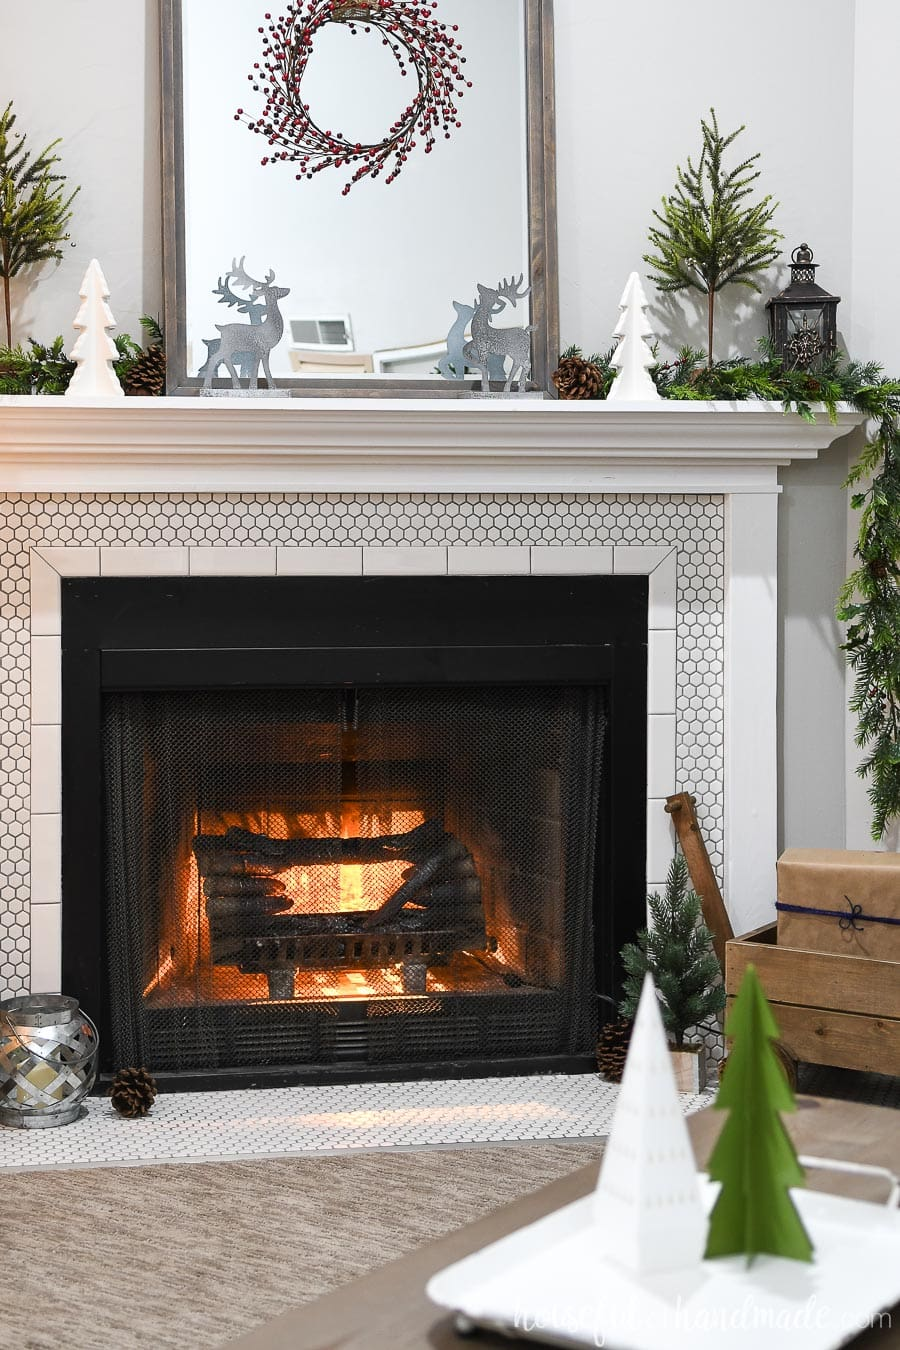 Fireplace and mantel all decorated with Classic Christmas decor.